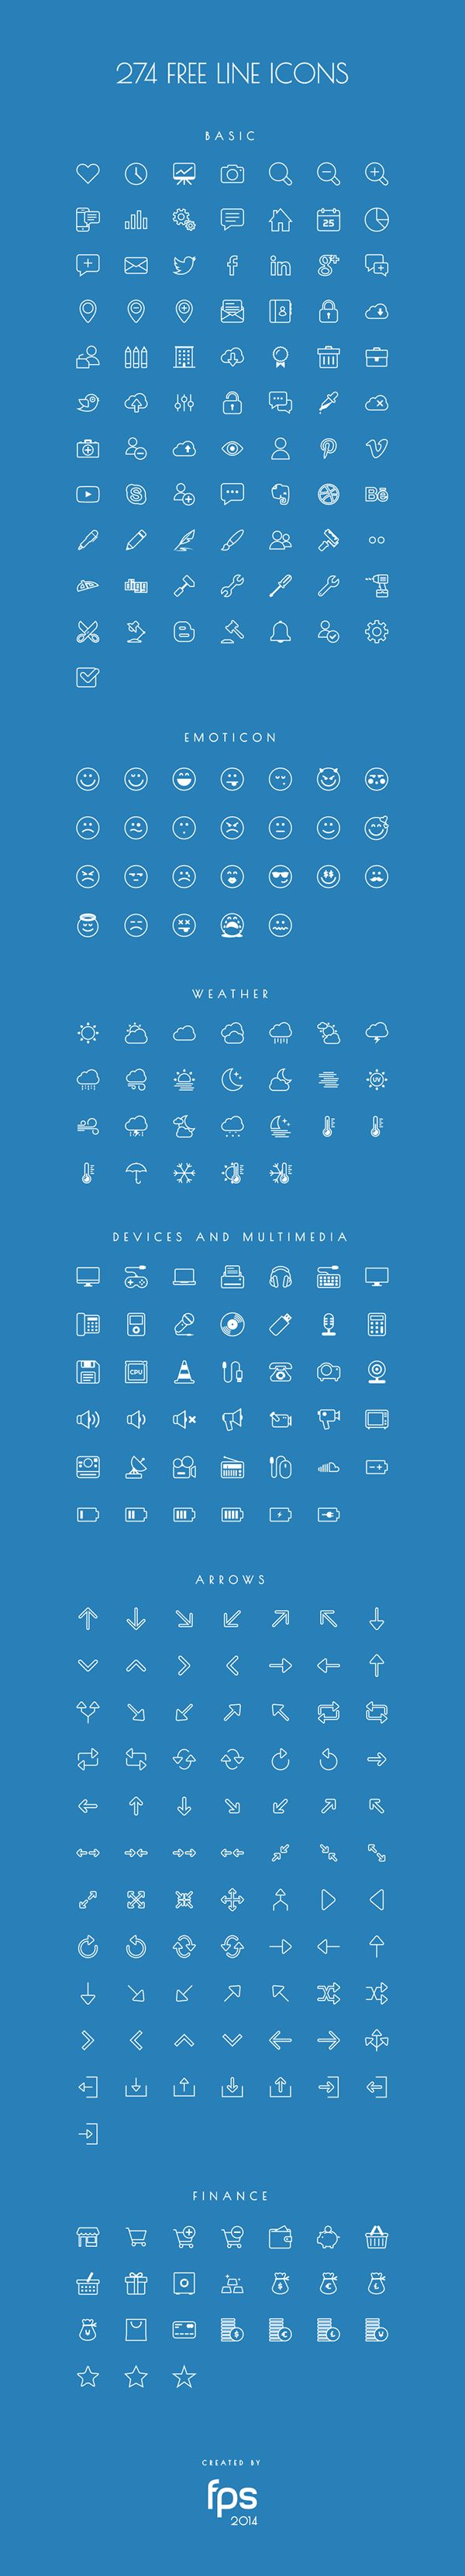 Completely free vector based line icons for you. In the pack you can find icons in PDF, SVG, EPS, PNG formats and finally as an icon font.